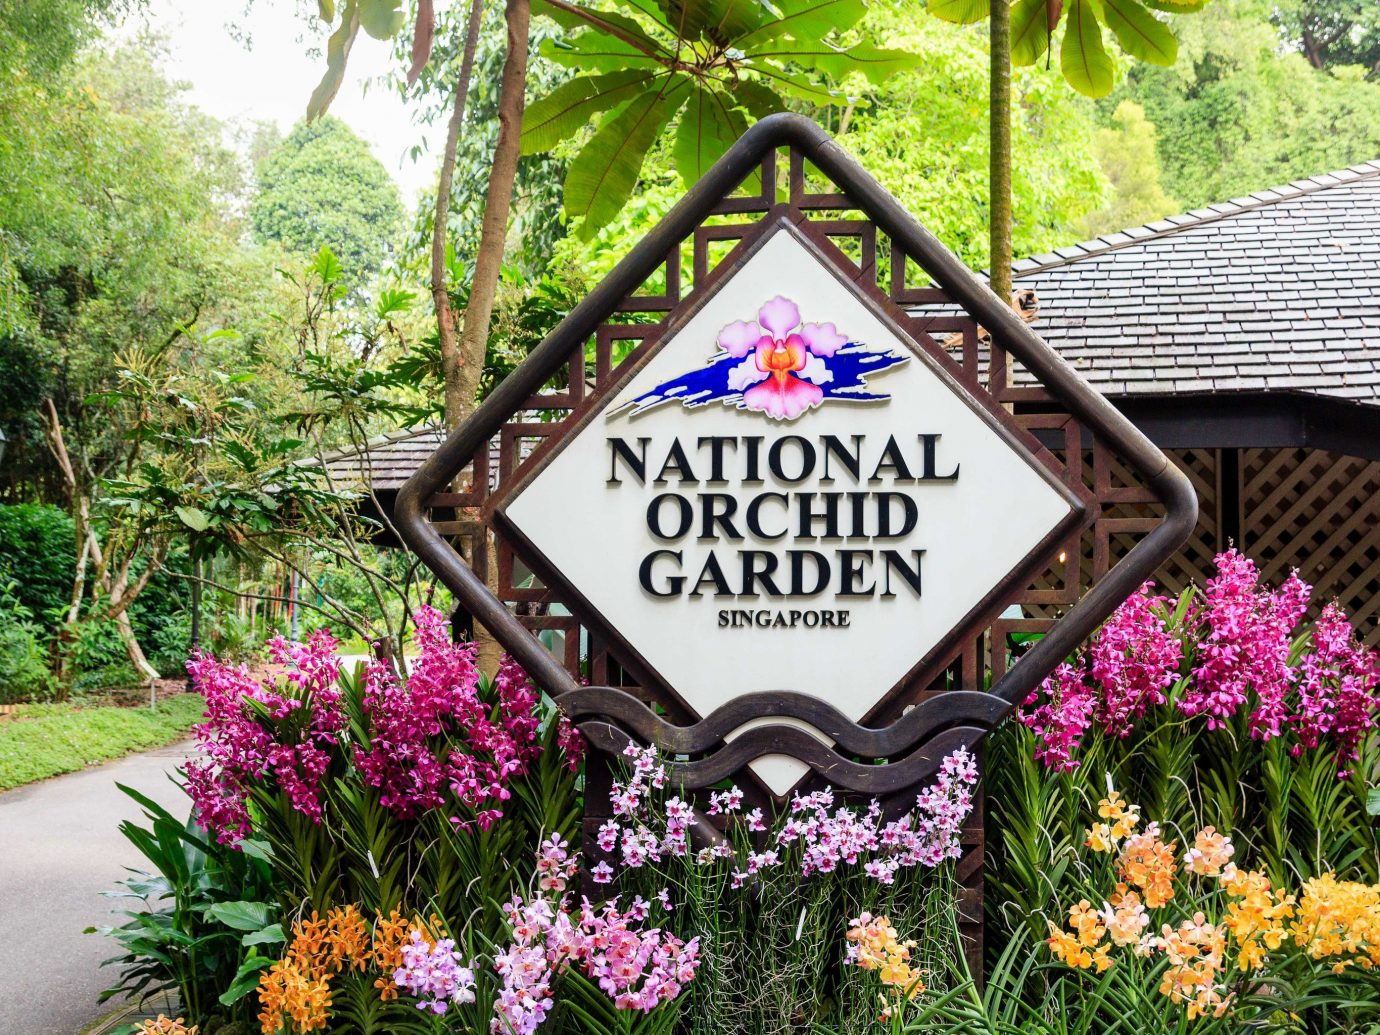 Arts + Culture Singapore Southeast Asia Trip Ideas tree flower outdoor plant Nature flora purple Garden spring flowering plant sign grass shrub recreation plantation botanical garden bushes decorated colorful surrounded